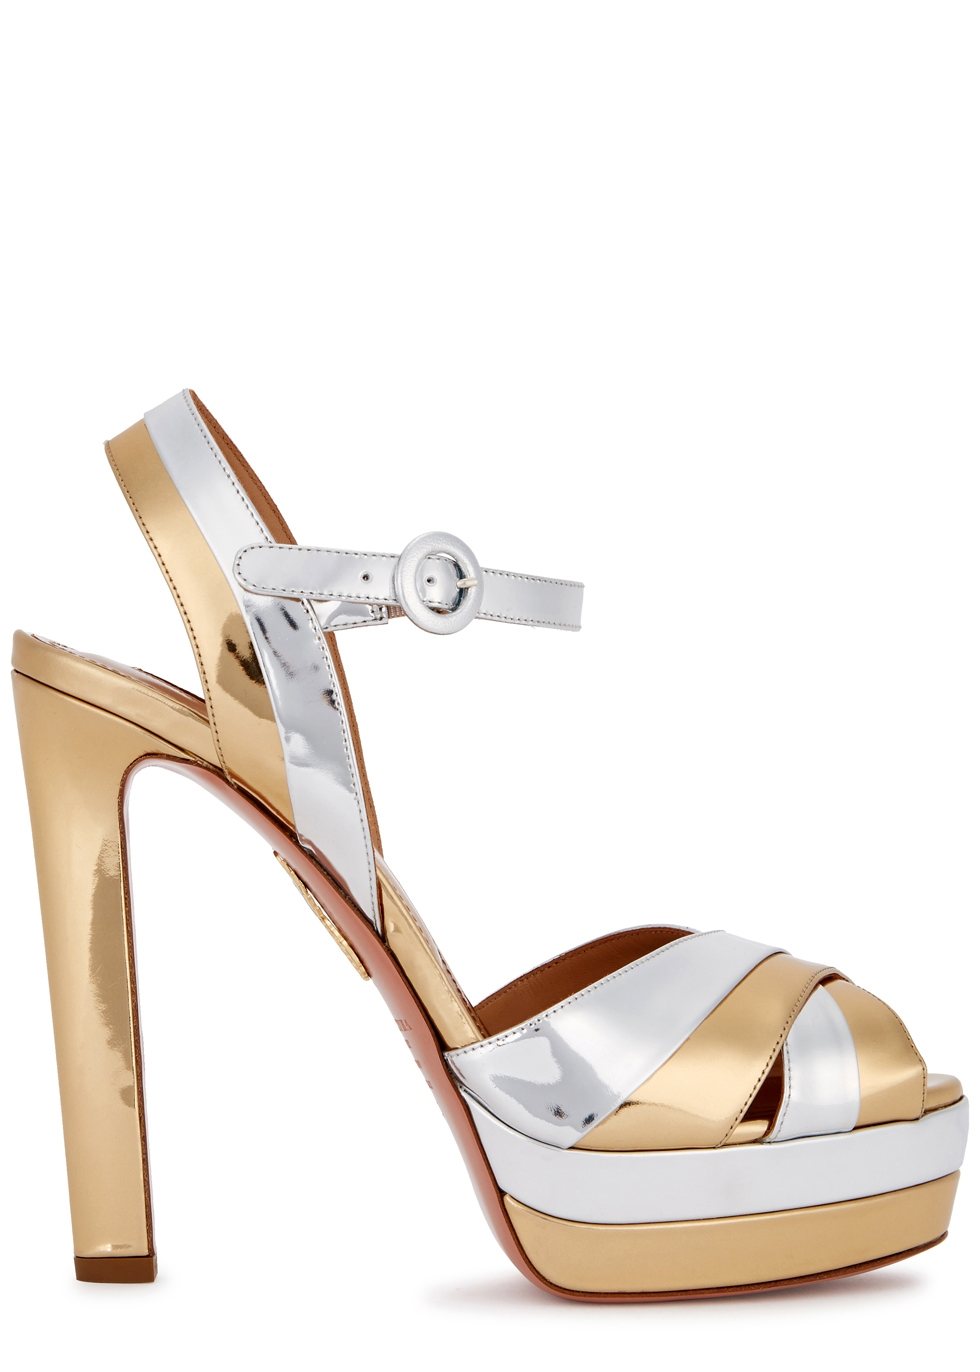 AQUAZZURA COQUETTE PATENT LEATHER PLATFORM SANDALS